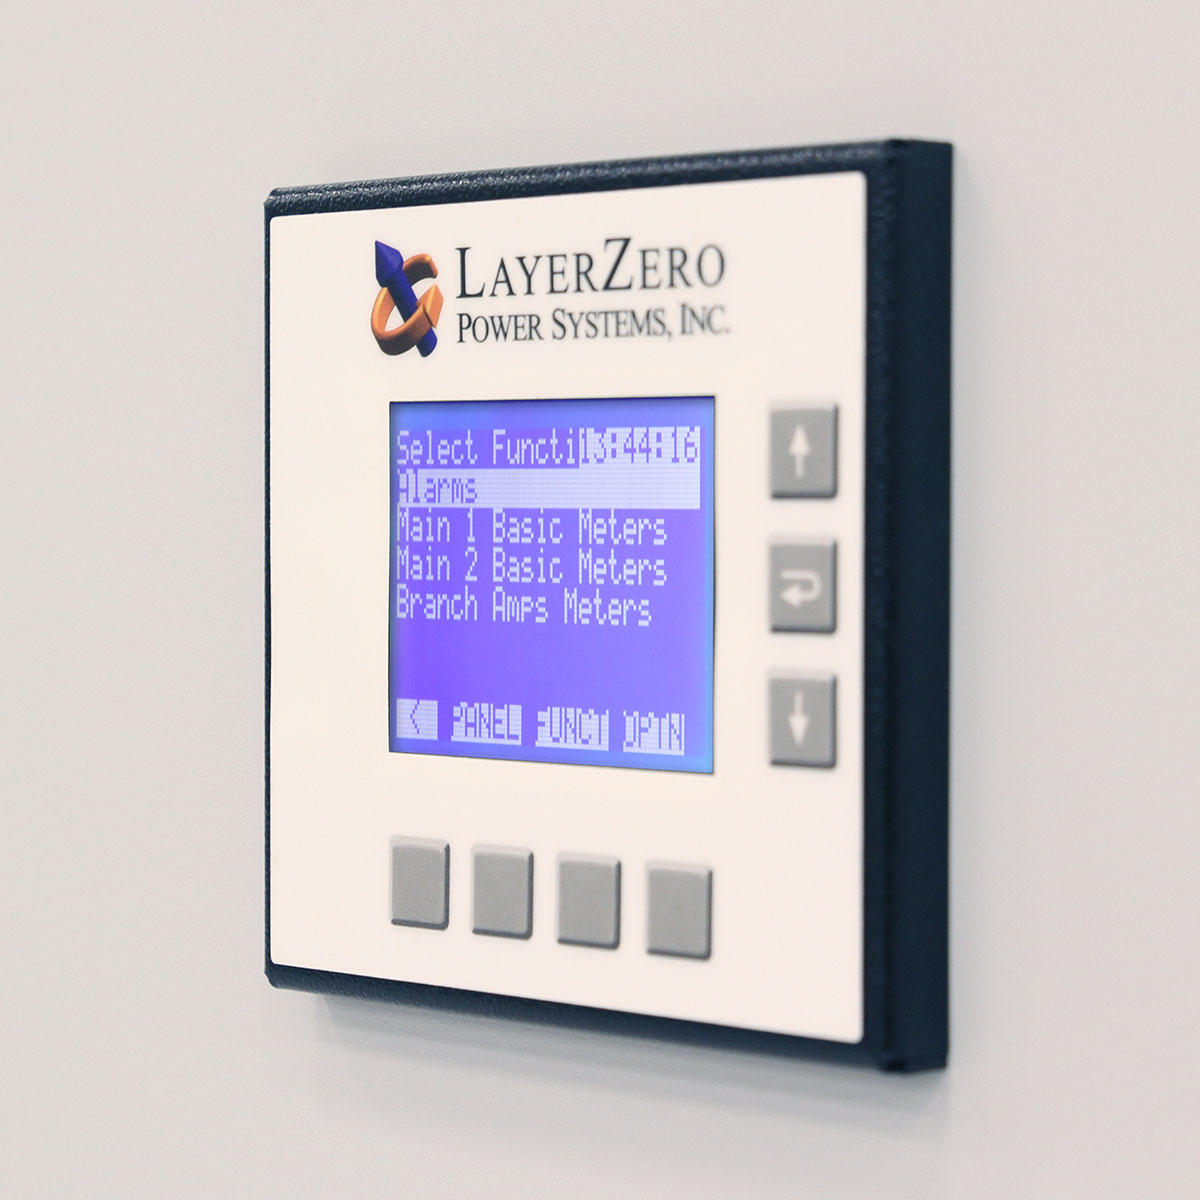 The LayerZero Series 70: ePanel-1 Compact Local LCD Display.